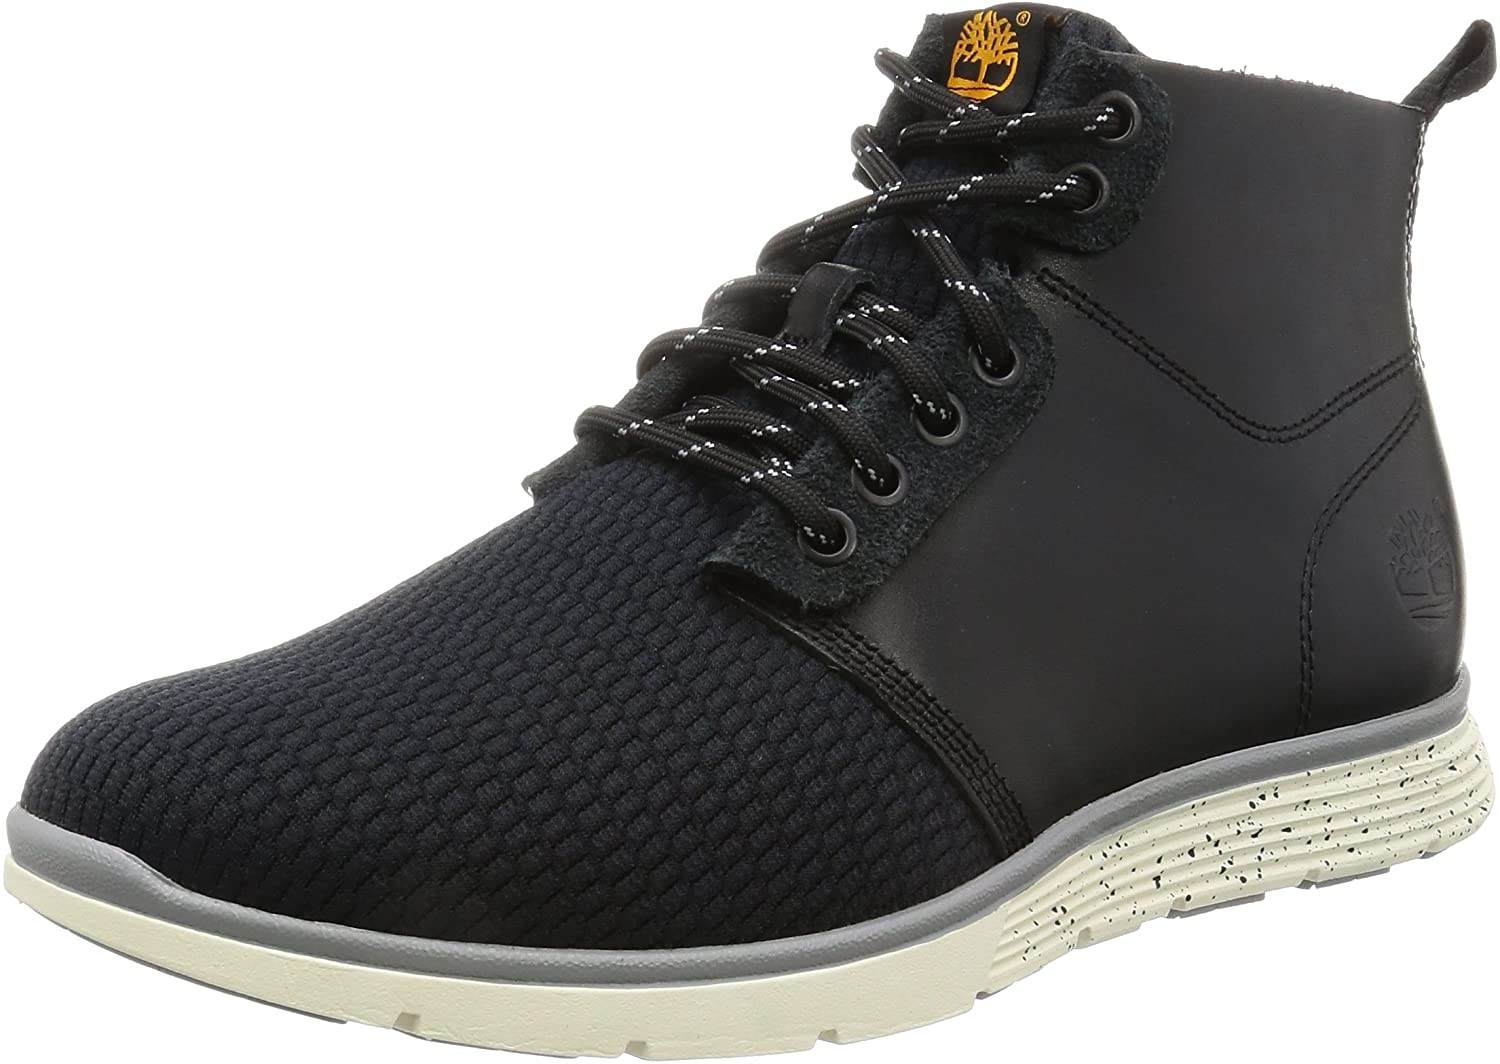 Timberland Ankle Boots A15B8 Black